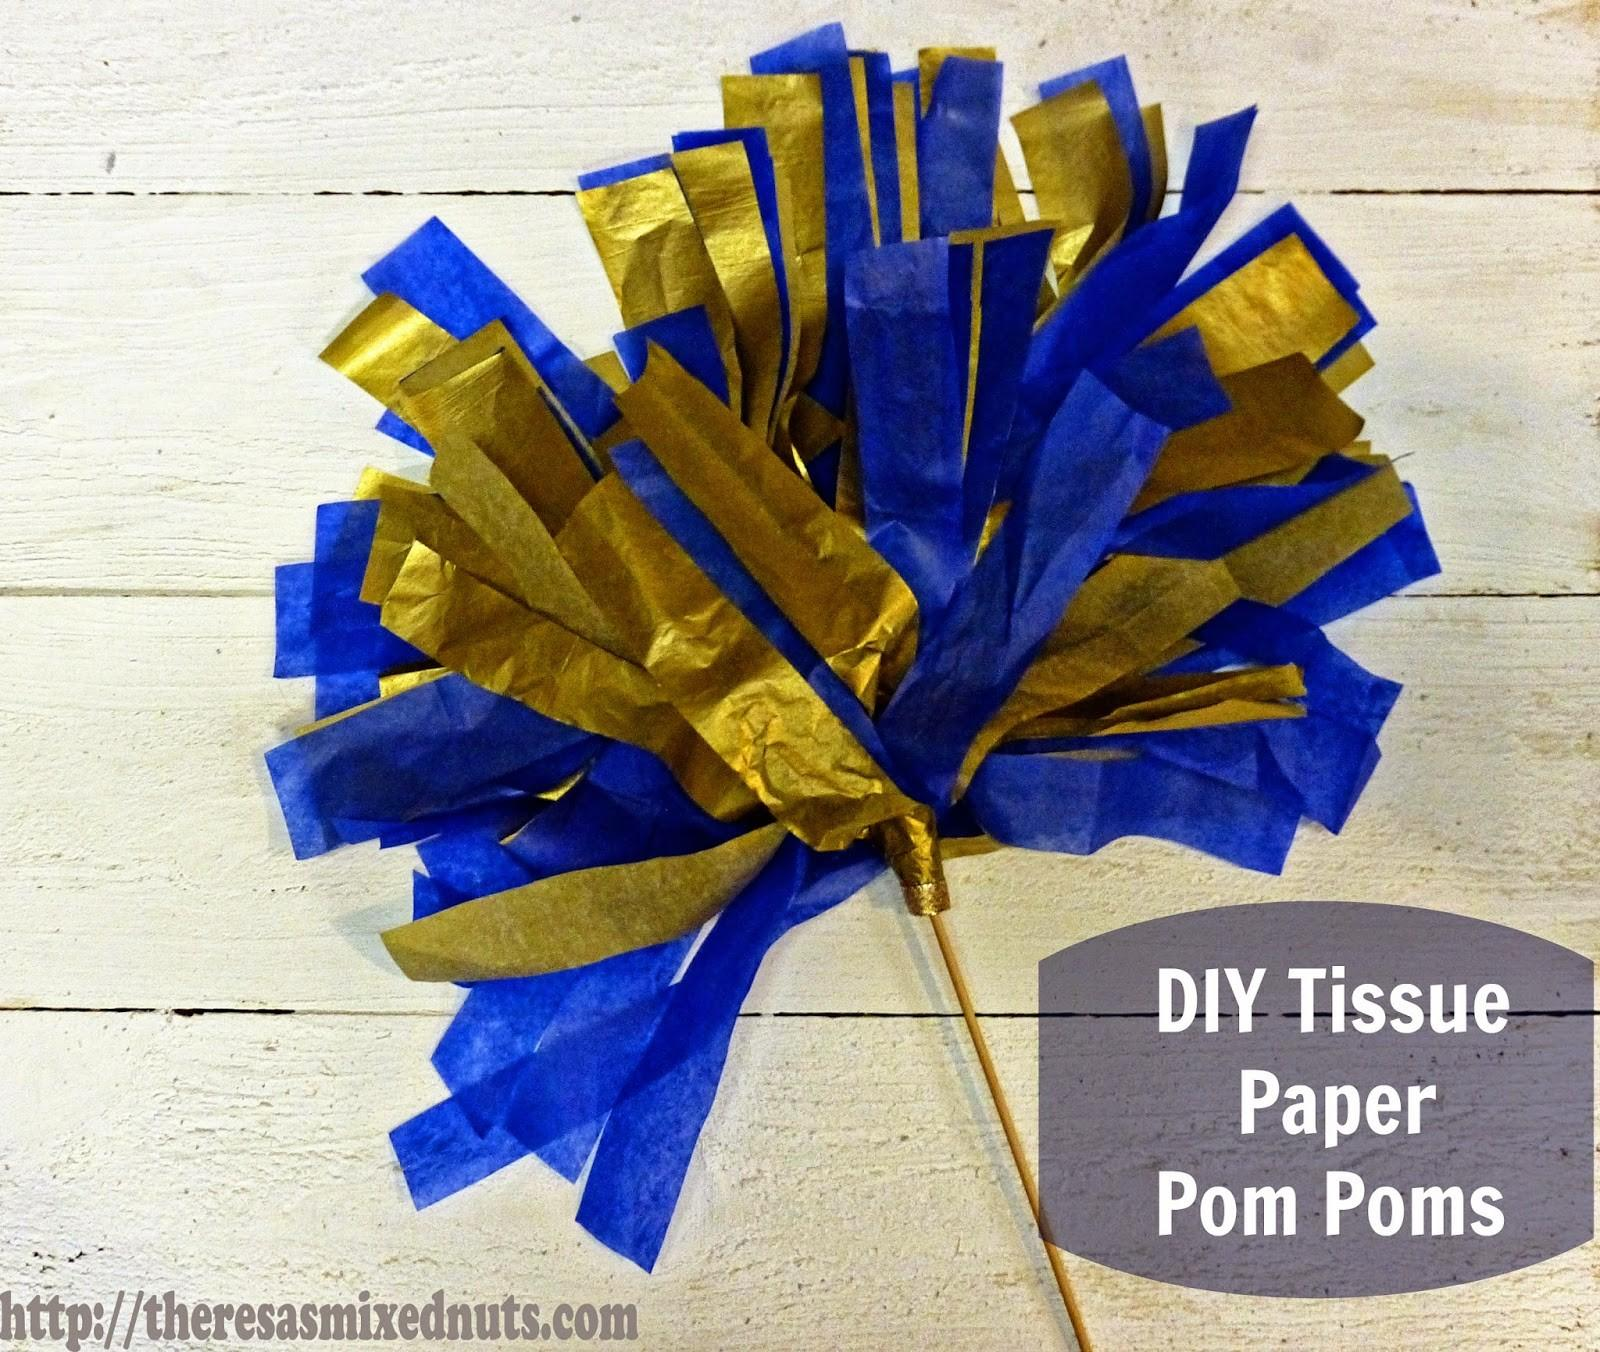 Theresa Mixed Nuts Diy Tissue Paper Pom Poms